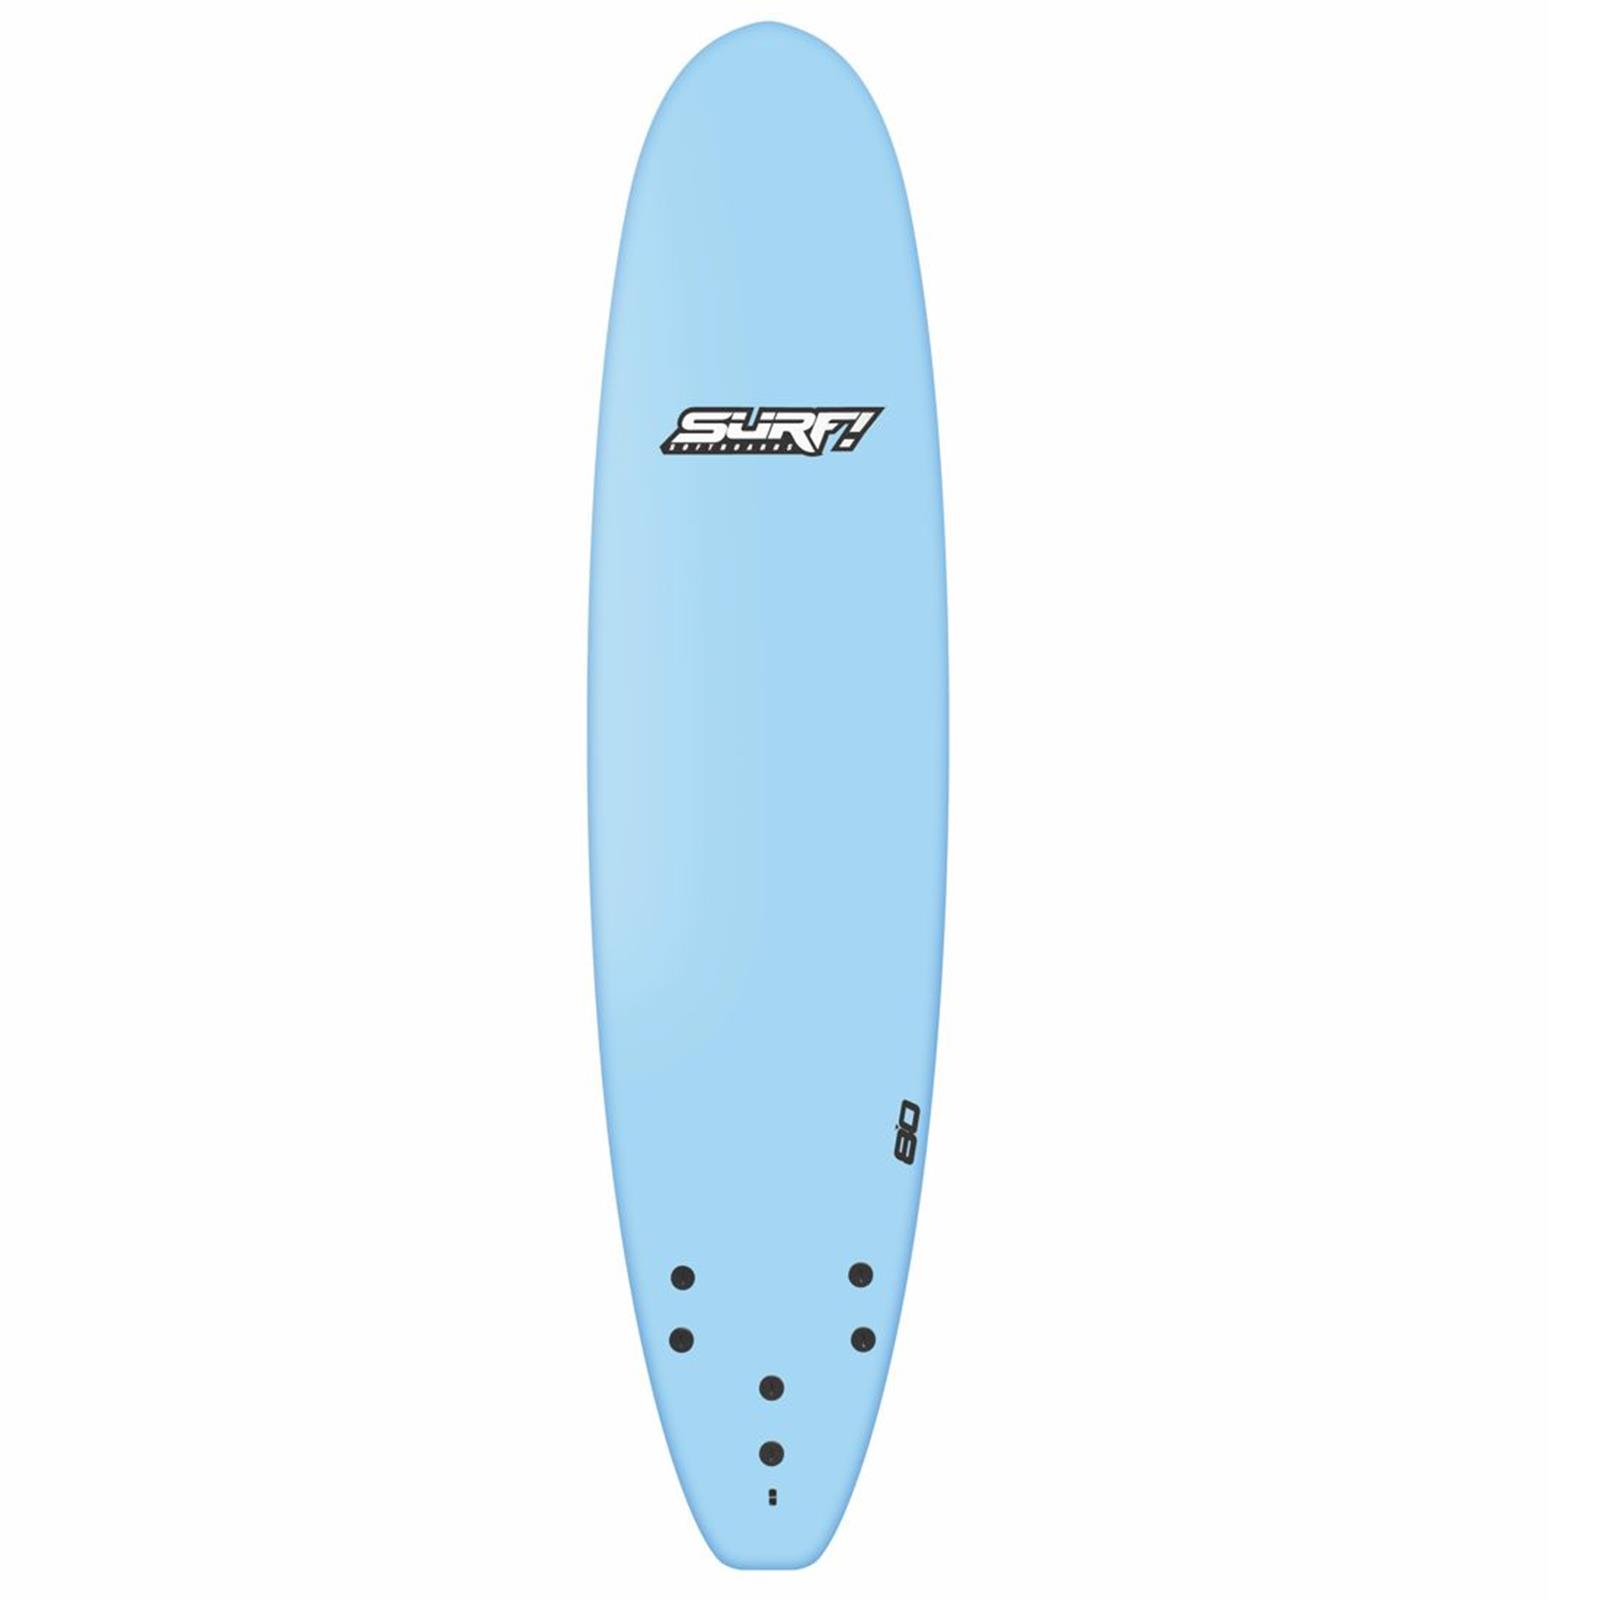 Surfboard BUGZ SURF! Softboard 8.0 Mini Malibu